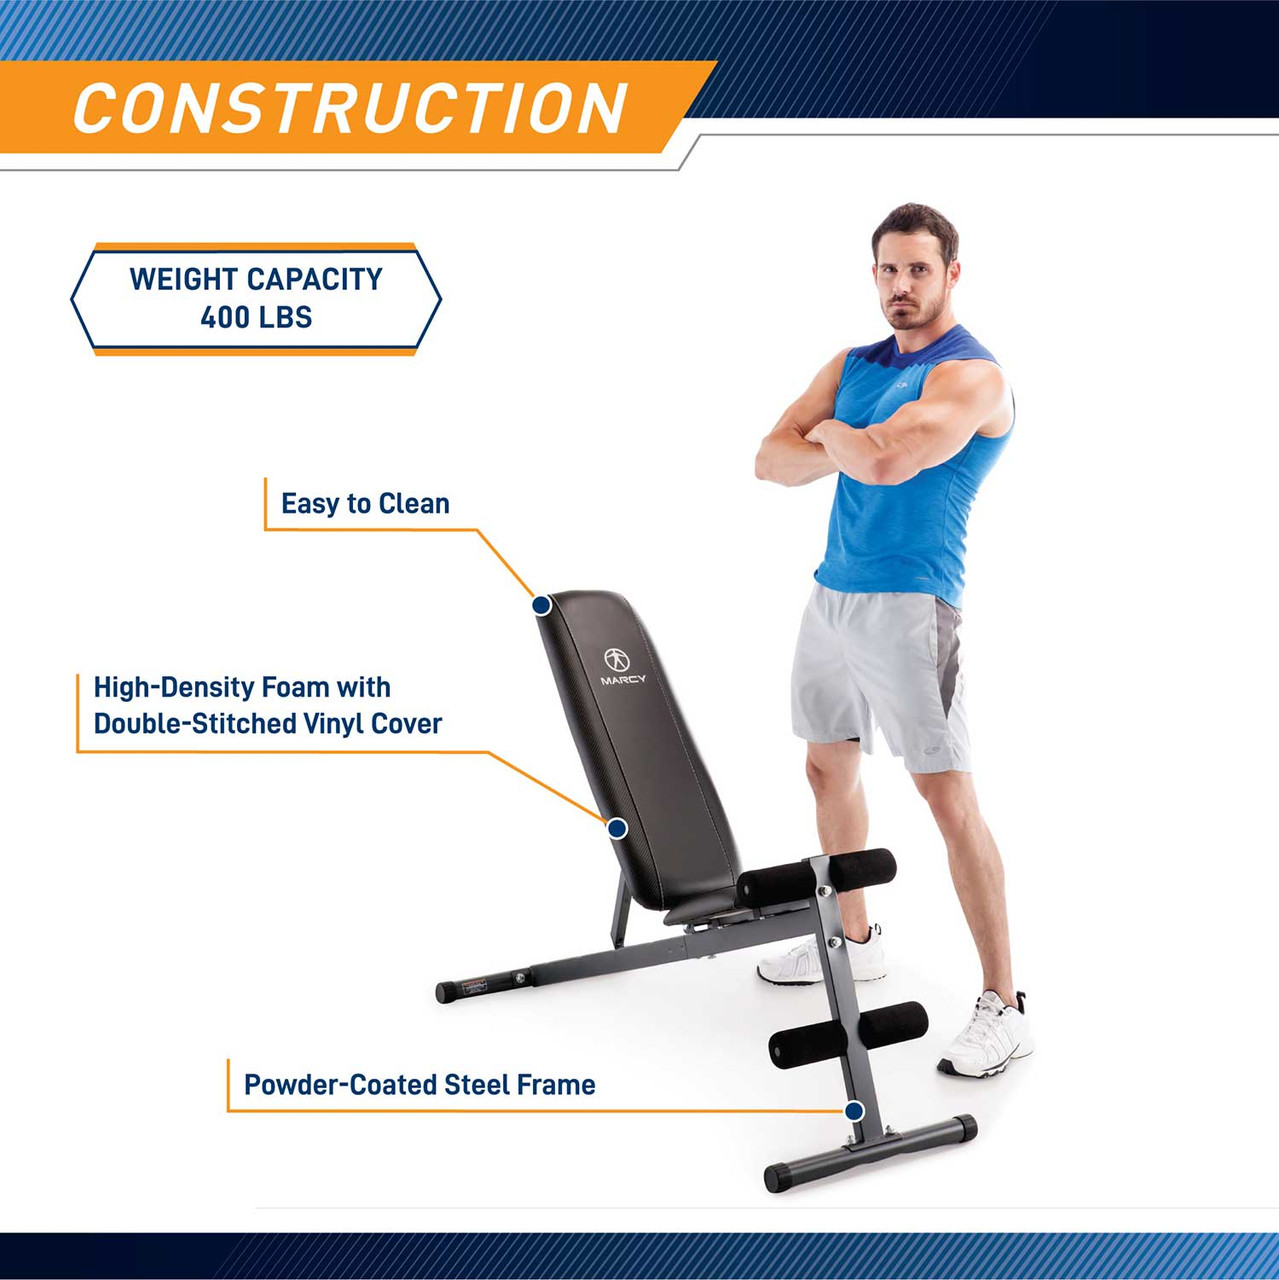 The Marcy Utility Bench SB-261W by Marcy adds variety to your workout with incline, decline, flat and Military positions